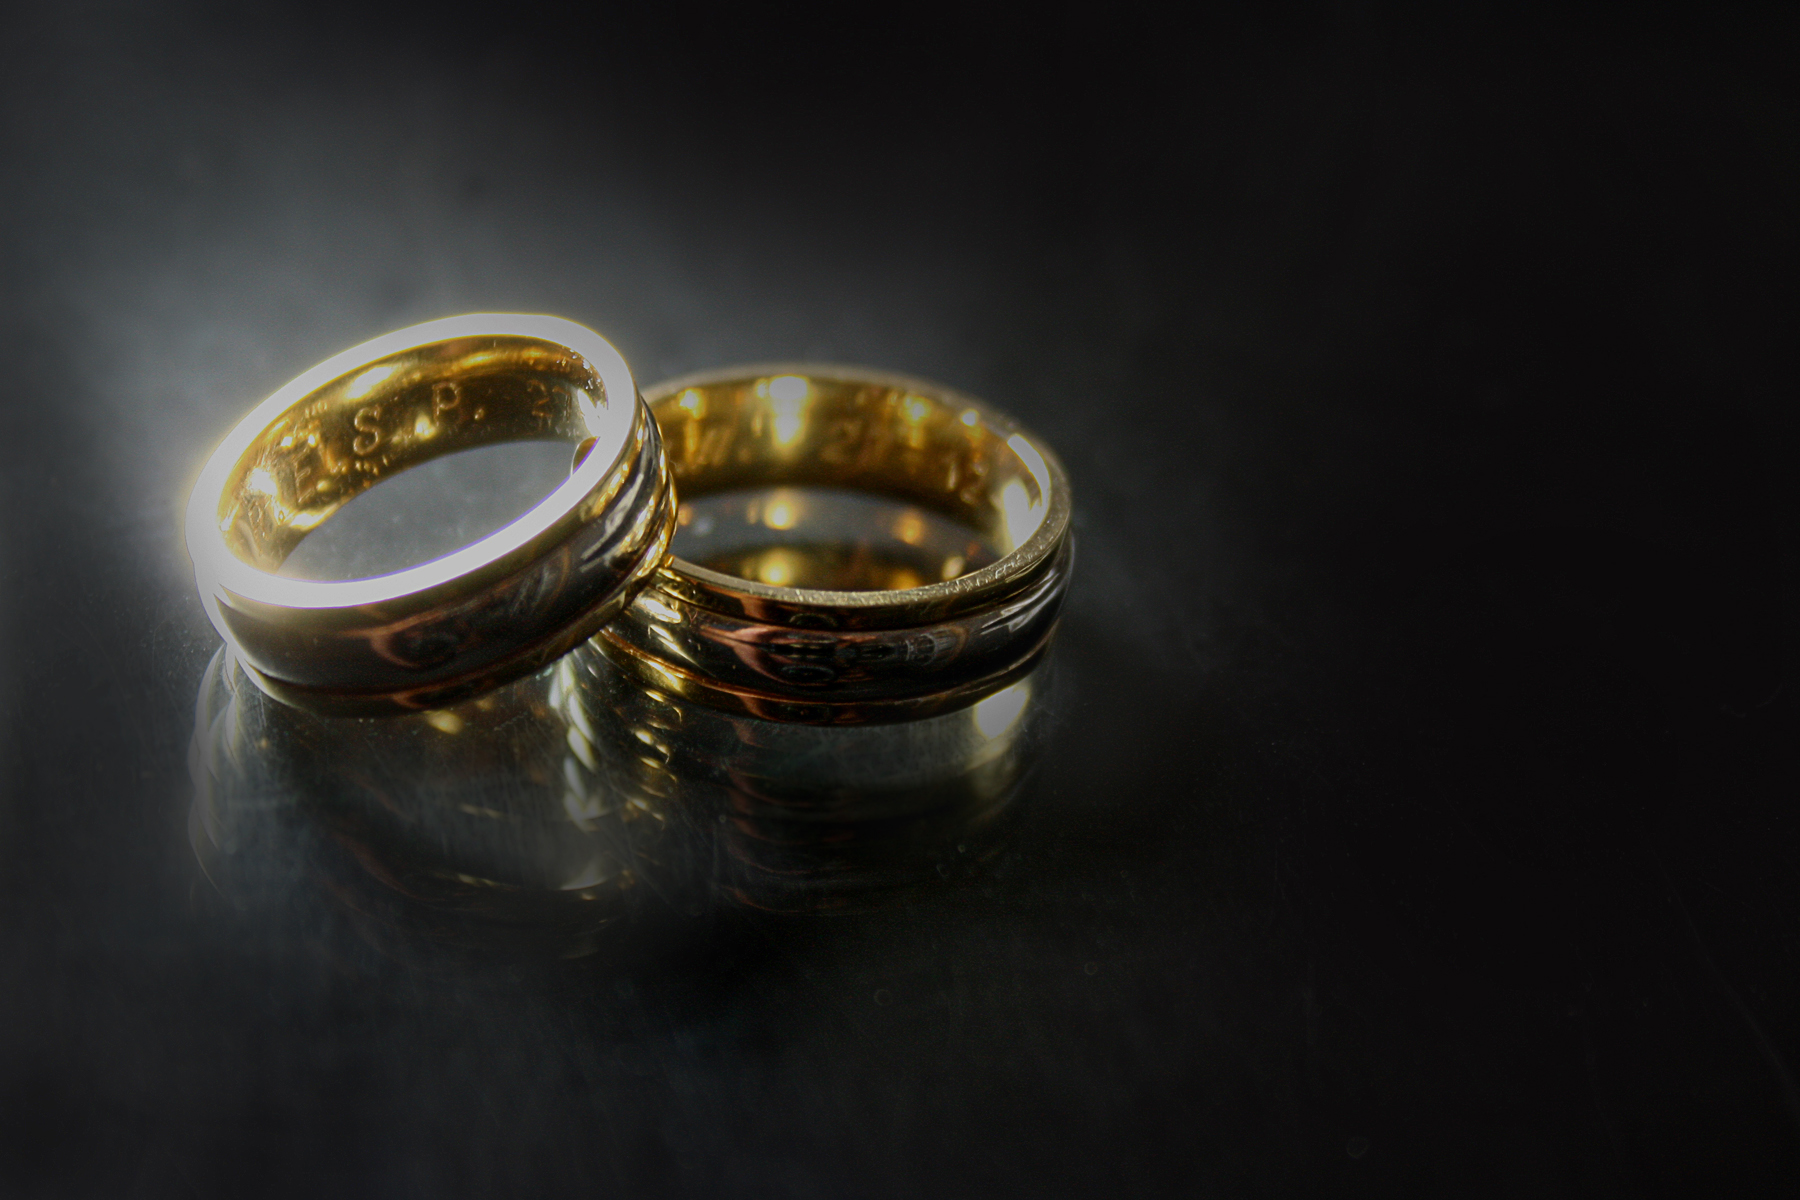 Sex outside of marriage is a sin